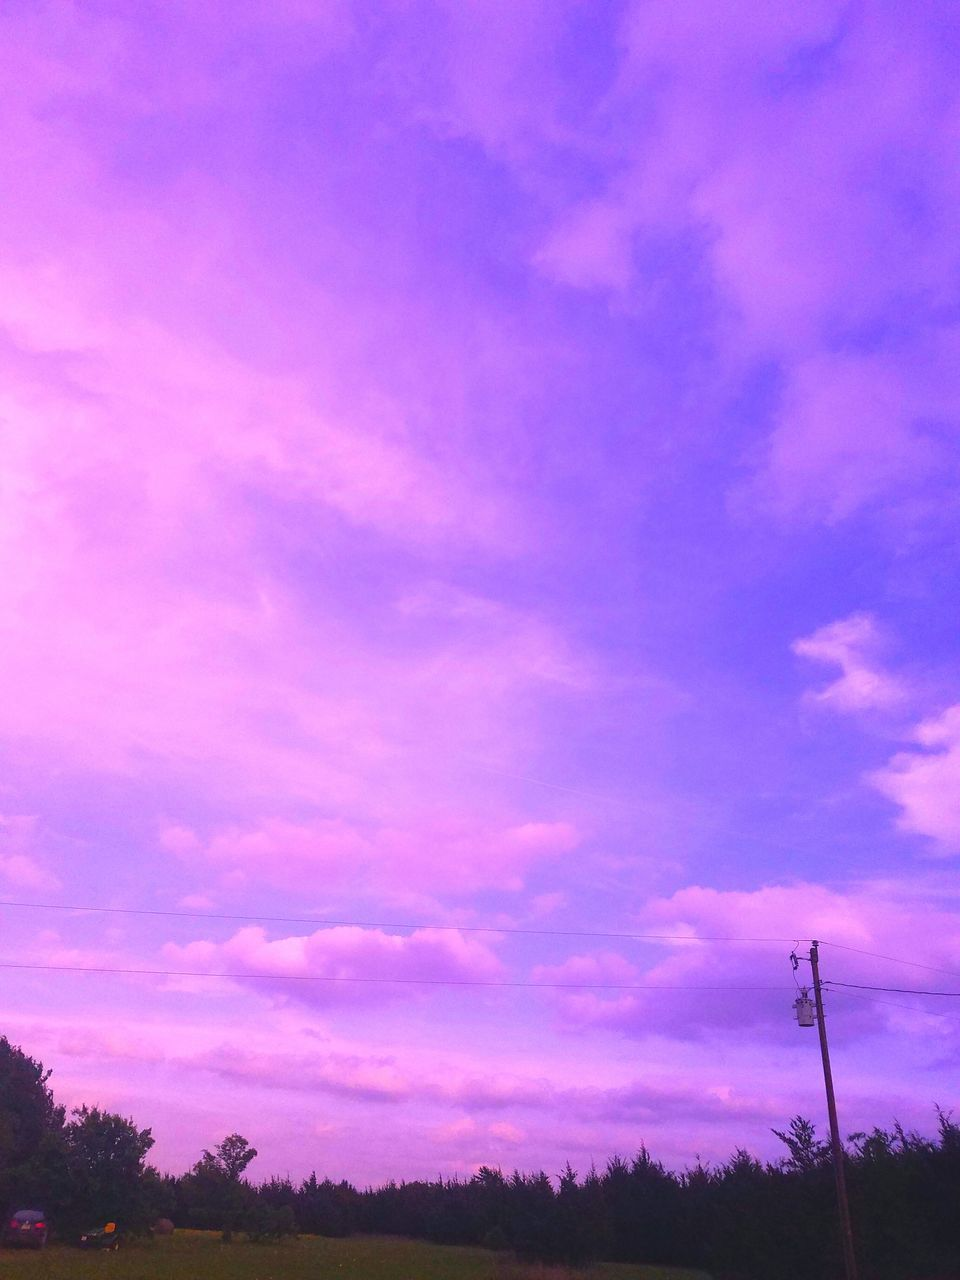 sky, nature, beauty in nature, purple, scenics, pink color, tranquil scene, no people, tranquility, cloud - sky, outdoors, tree, low angle view, sunset, day